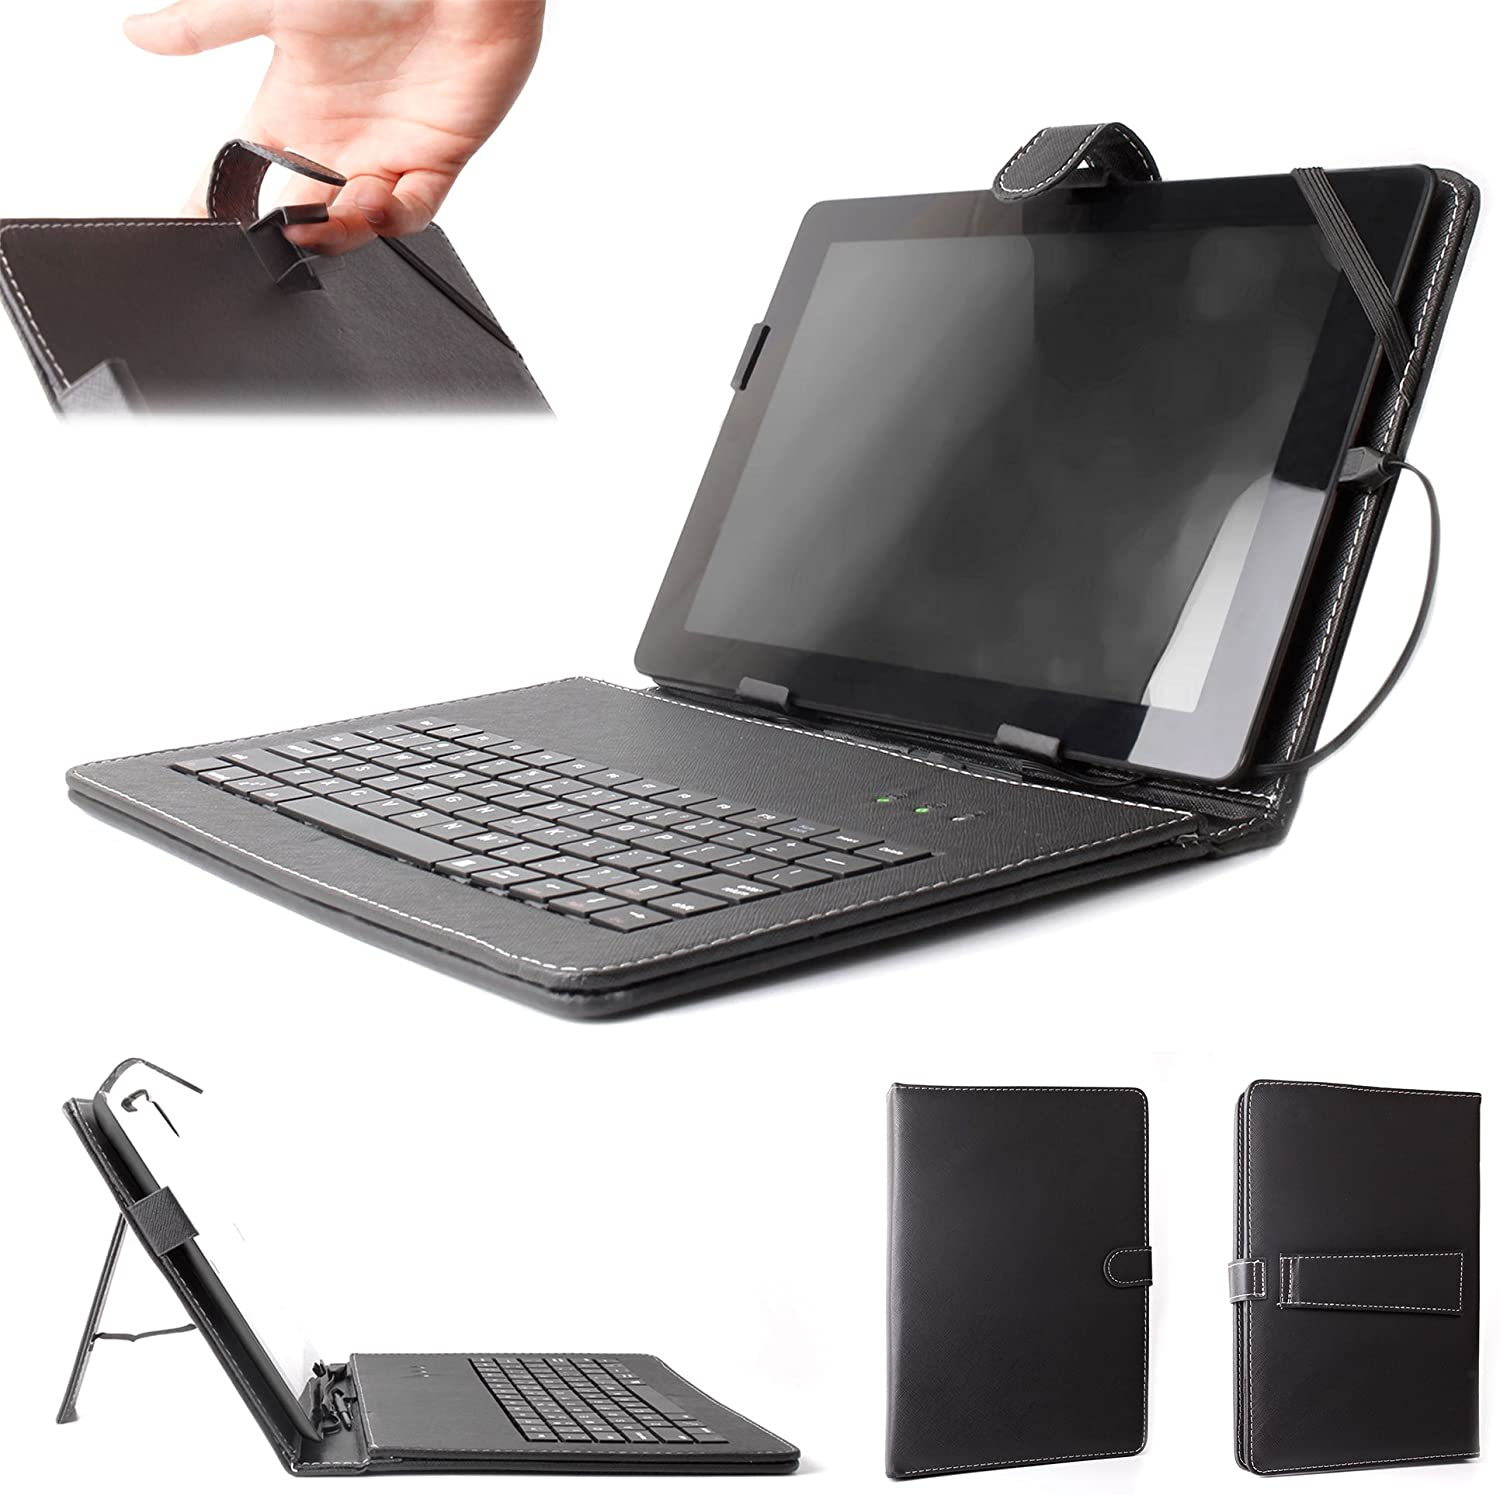 DURAGADGET Black Faux Leather Protective Case w/QWERTY Micro USB Keyboard - Compatible with GoClever Aries 101 TAB M1042   Orion 100 R1041   Orion 102 R1042BK & Terra 101 A1021 Tablets